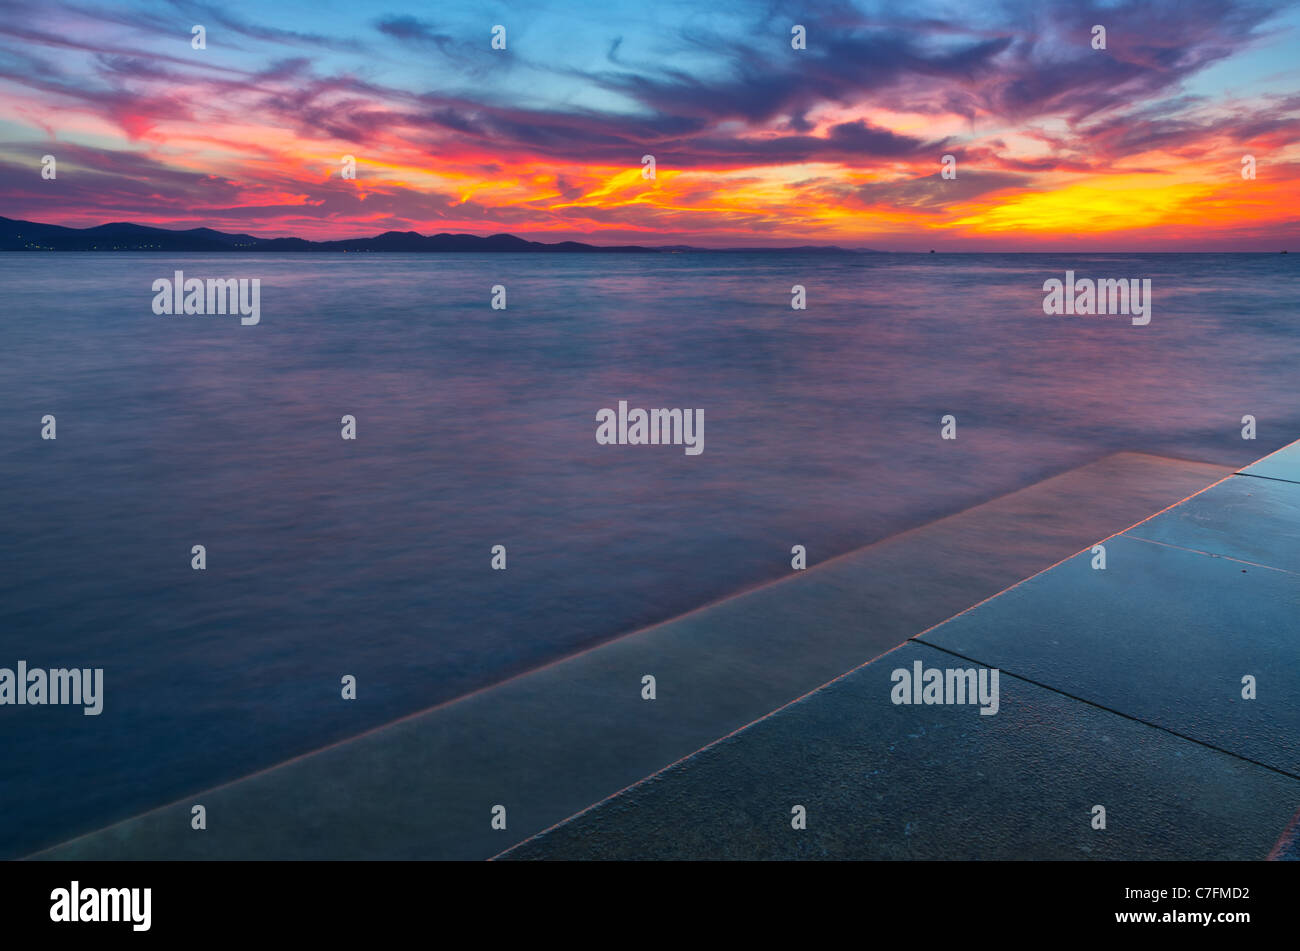 Zadar's famous Sea organs, and the sunset. One great evening in town Zadar, Adriatic, Croatia. - Stock Image